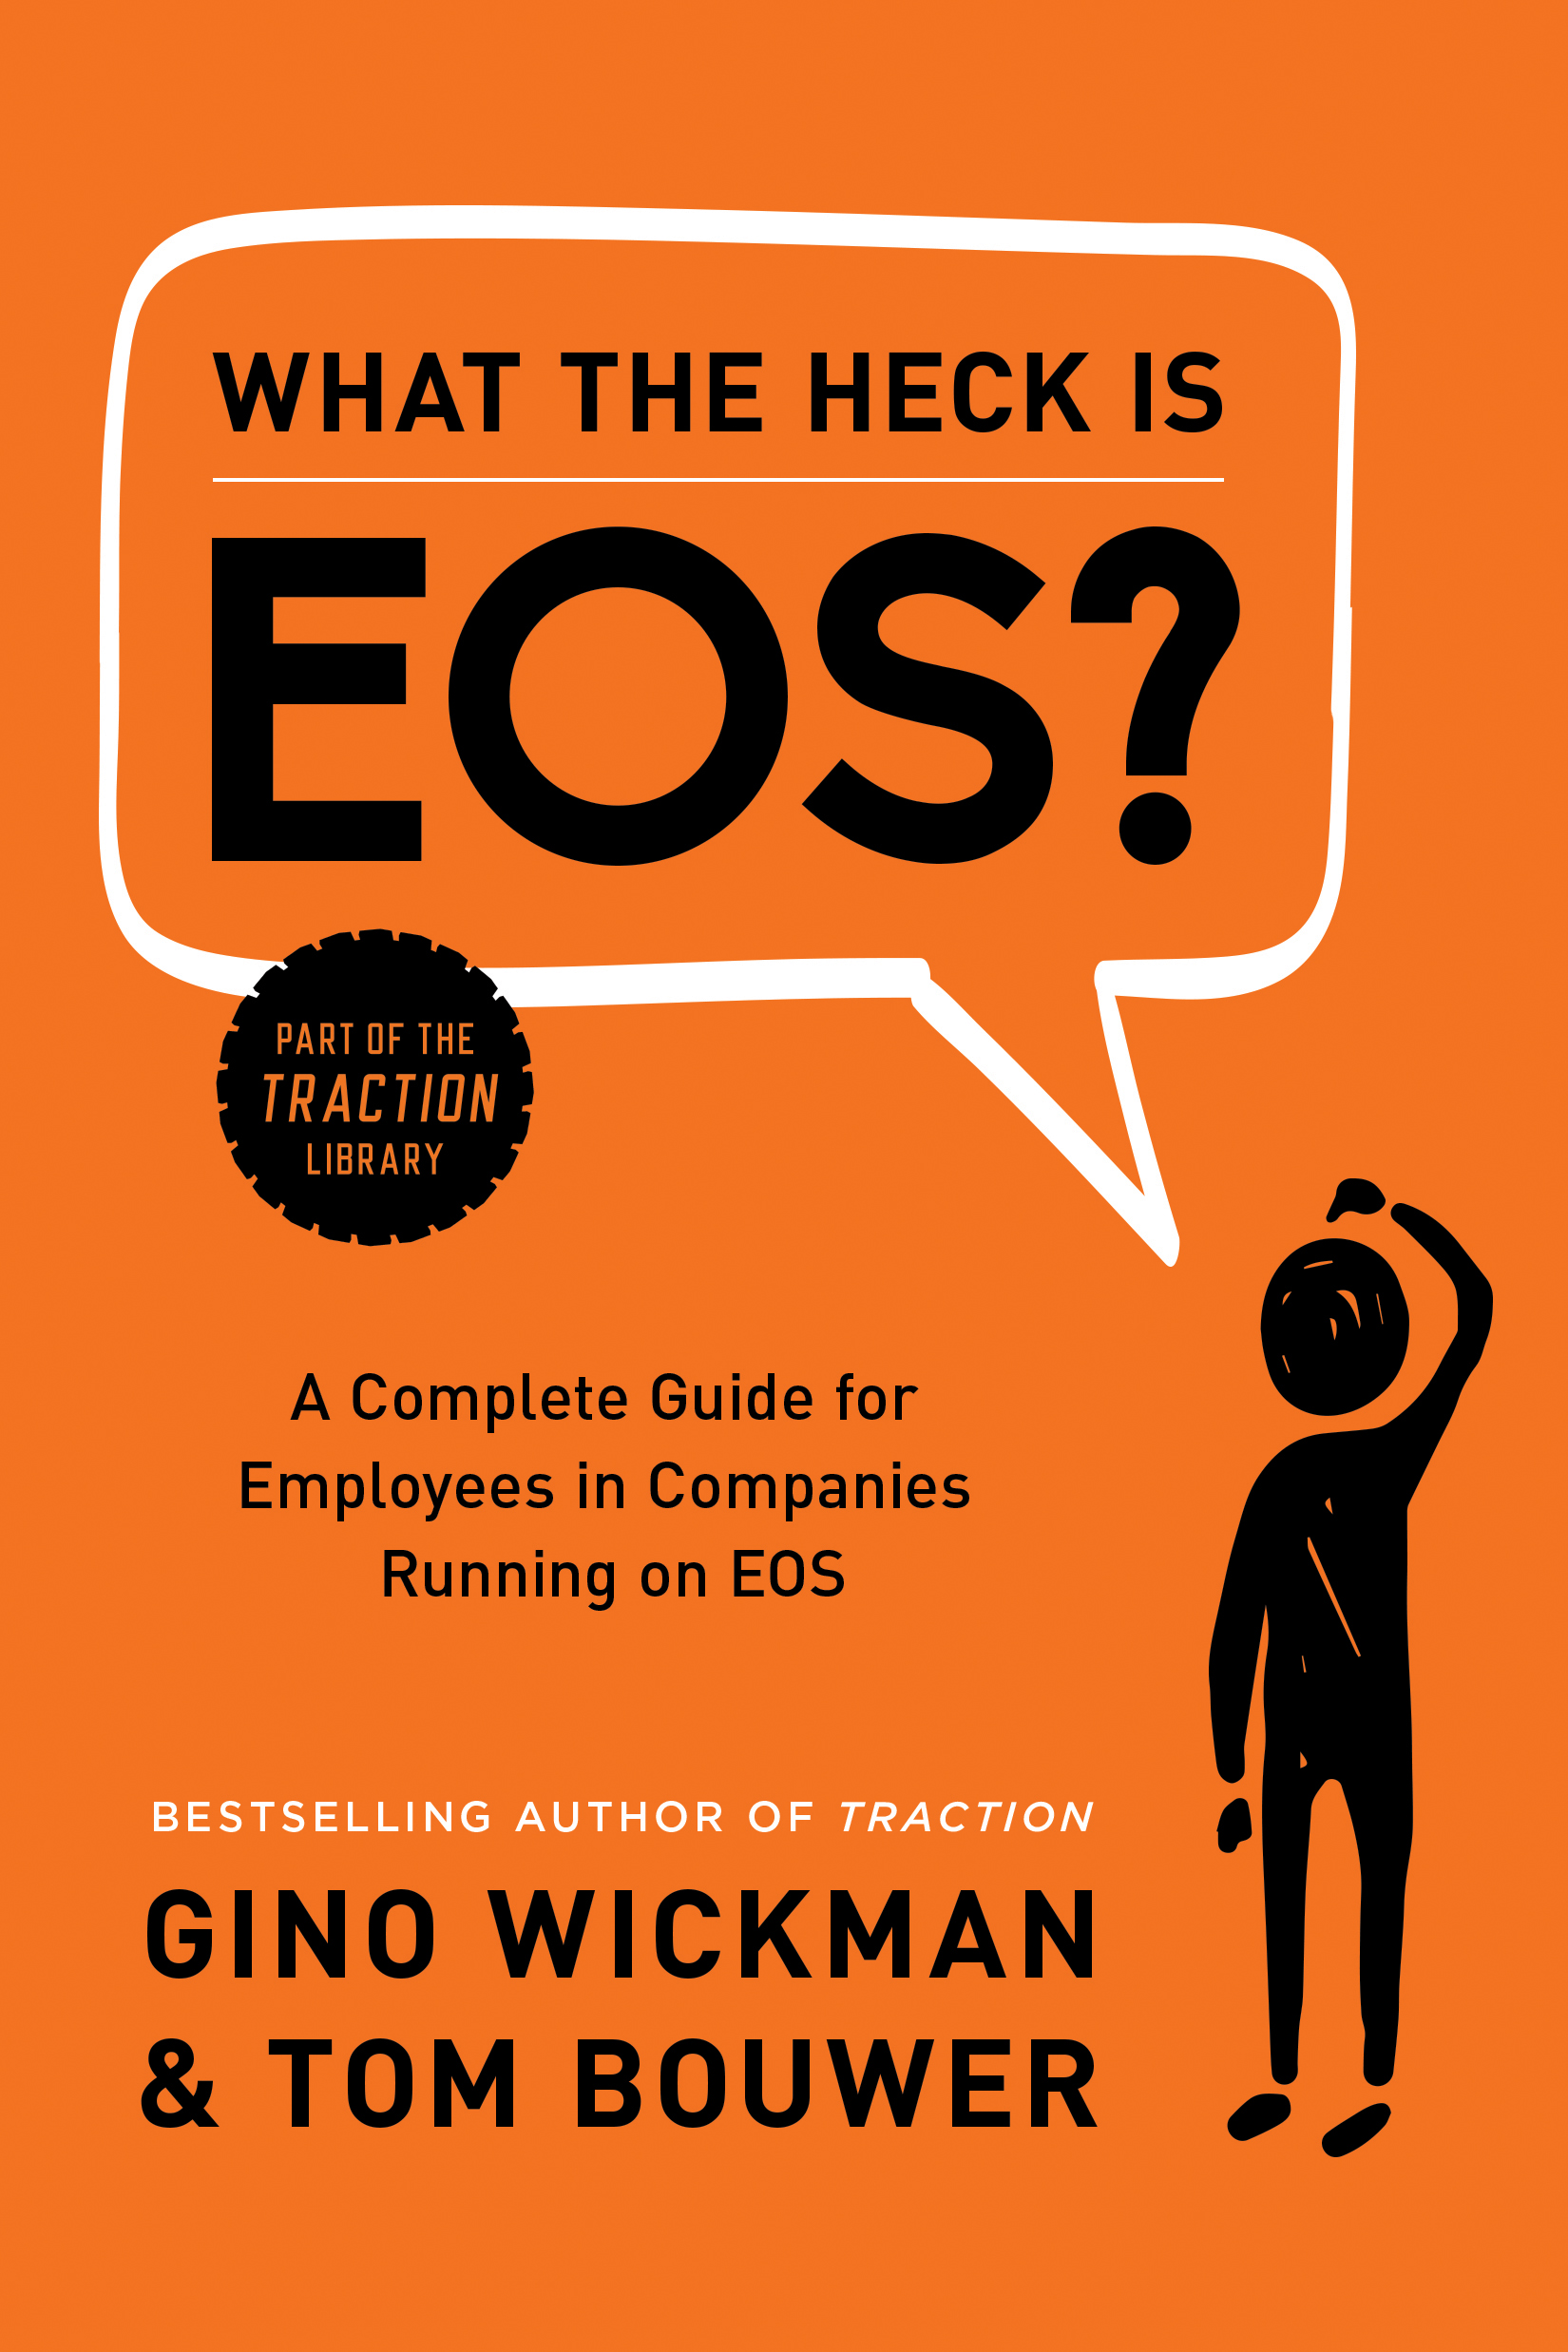 Download Ebook What the Heck Is EOS? by Gino Wickman Pdf